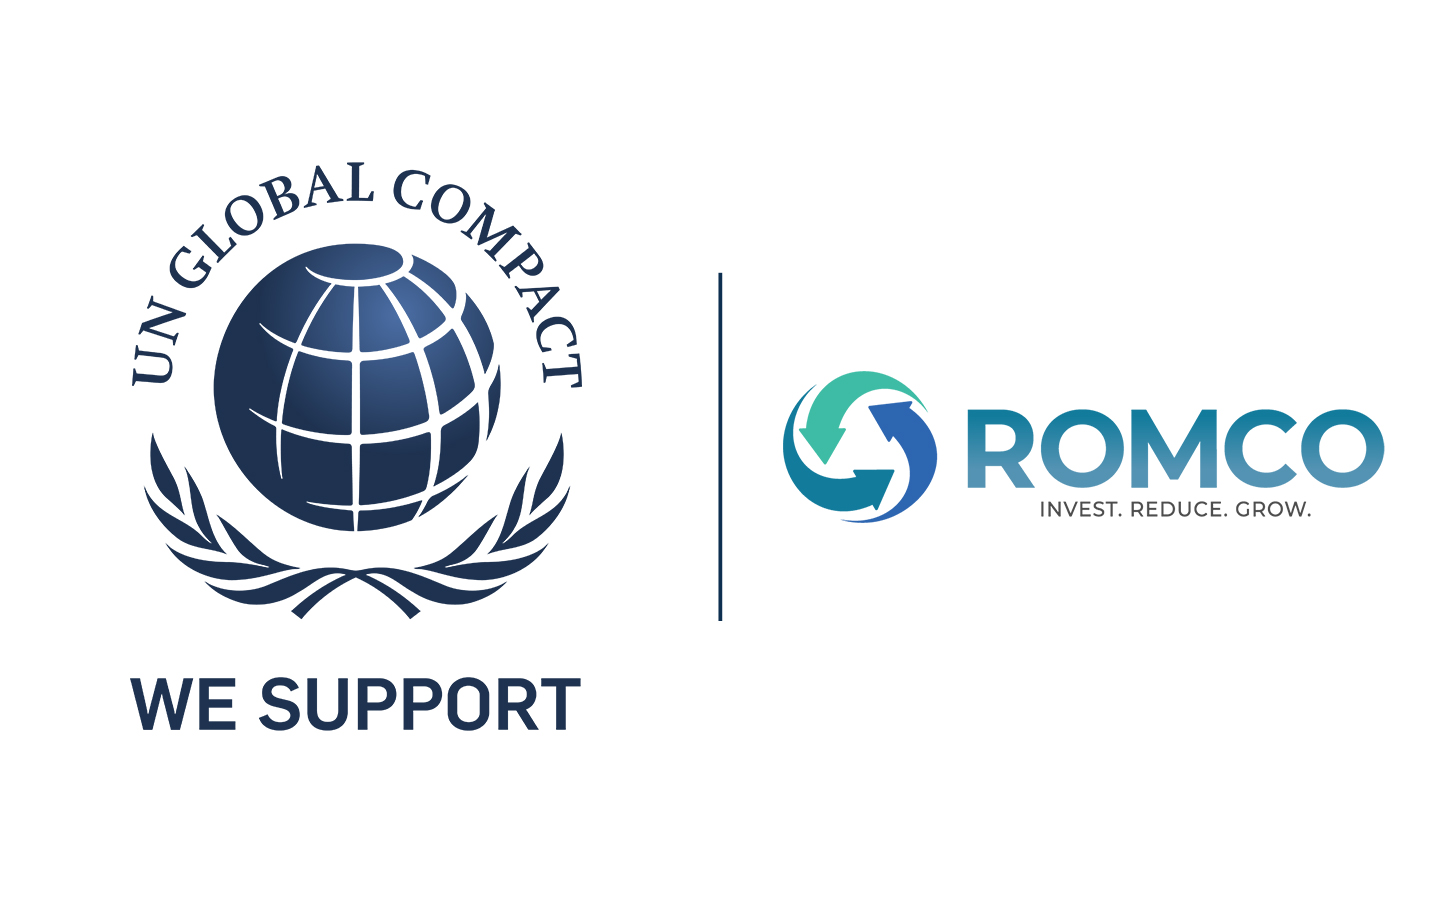 Company Announcement: Romco Have Signed The UN Global Compact